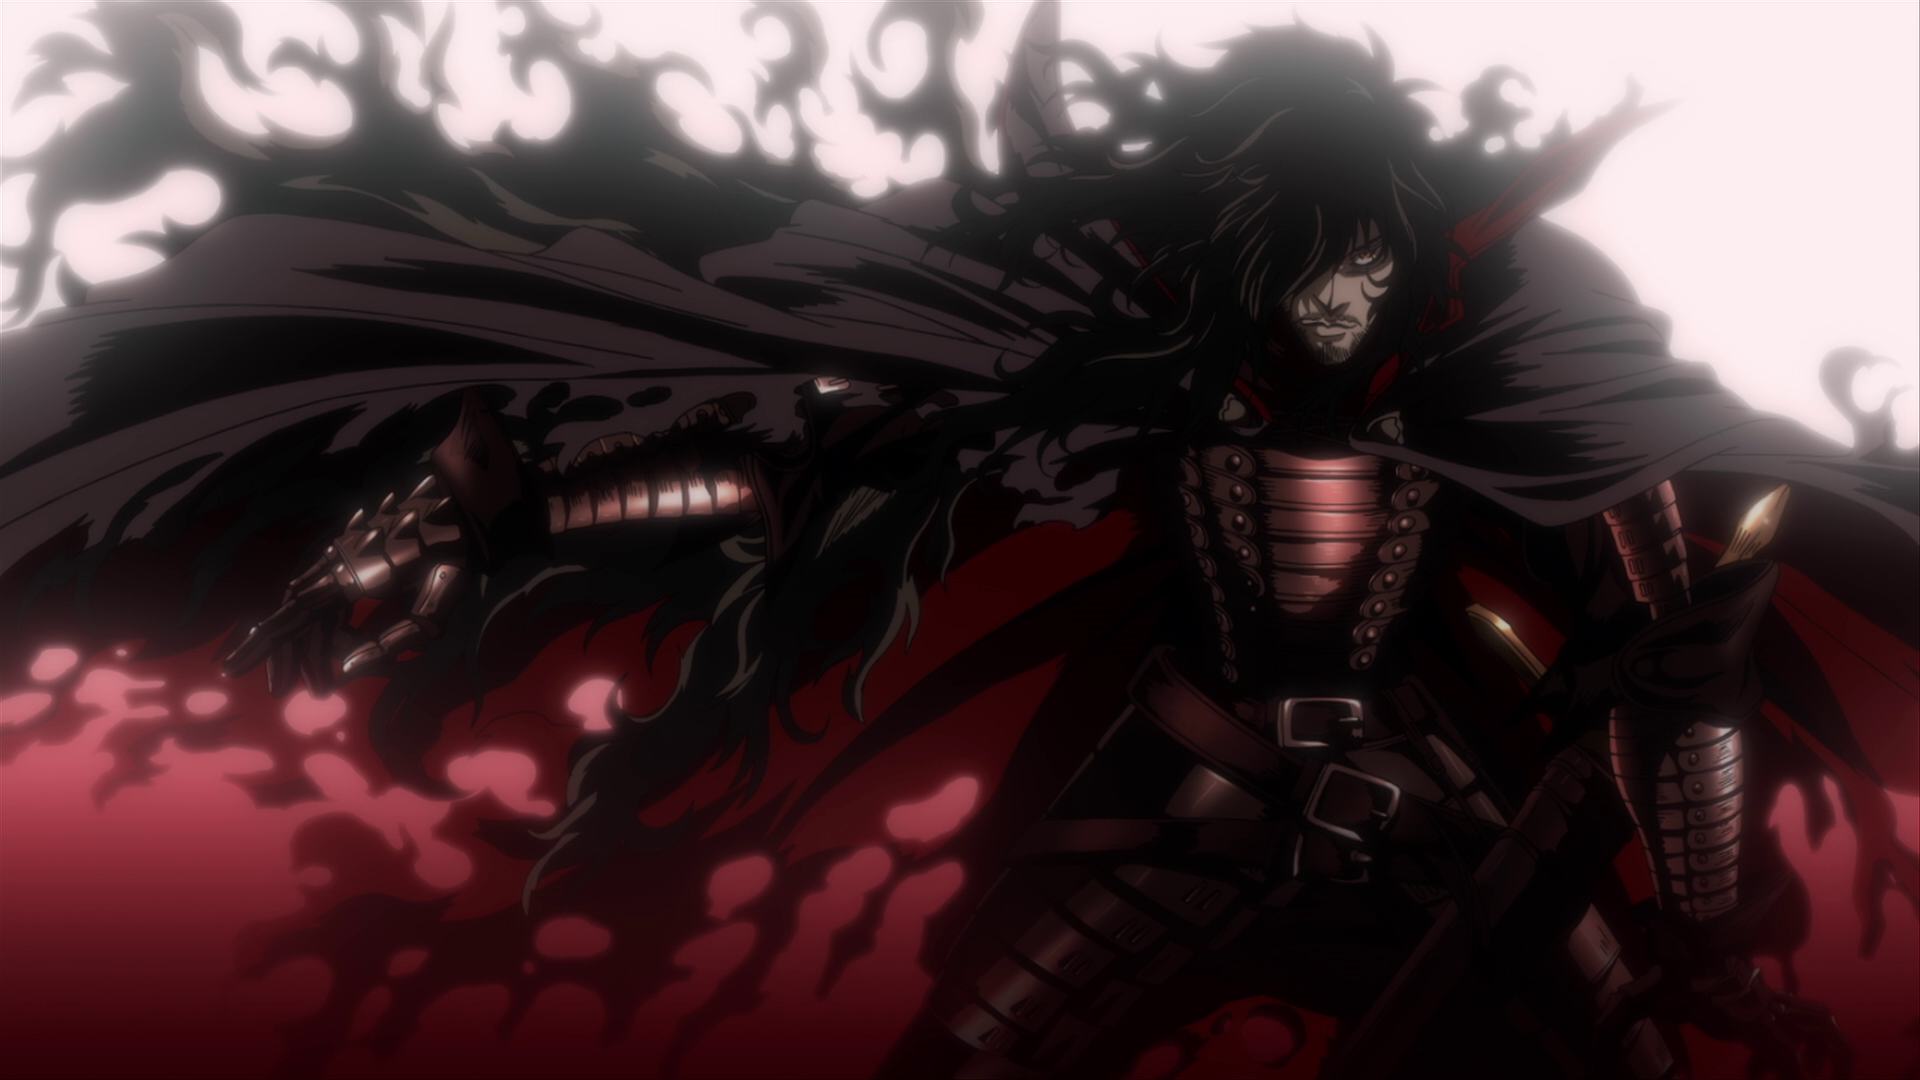 Alucard-Vampire-Hellsing-Ultimate-wallpaper-wp3602384